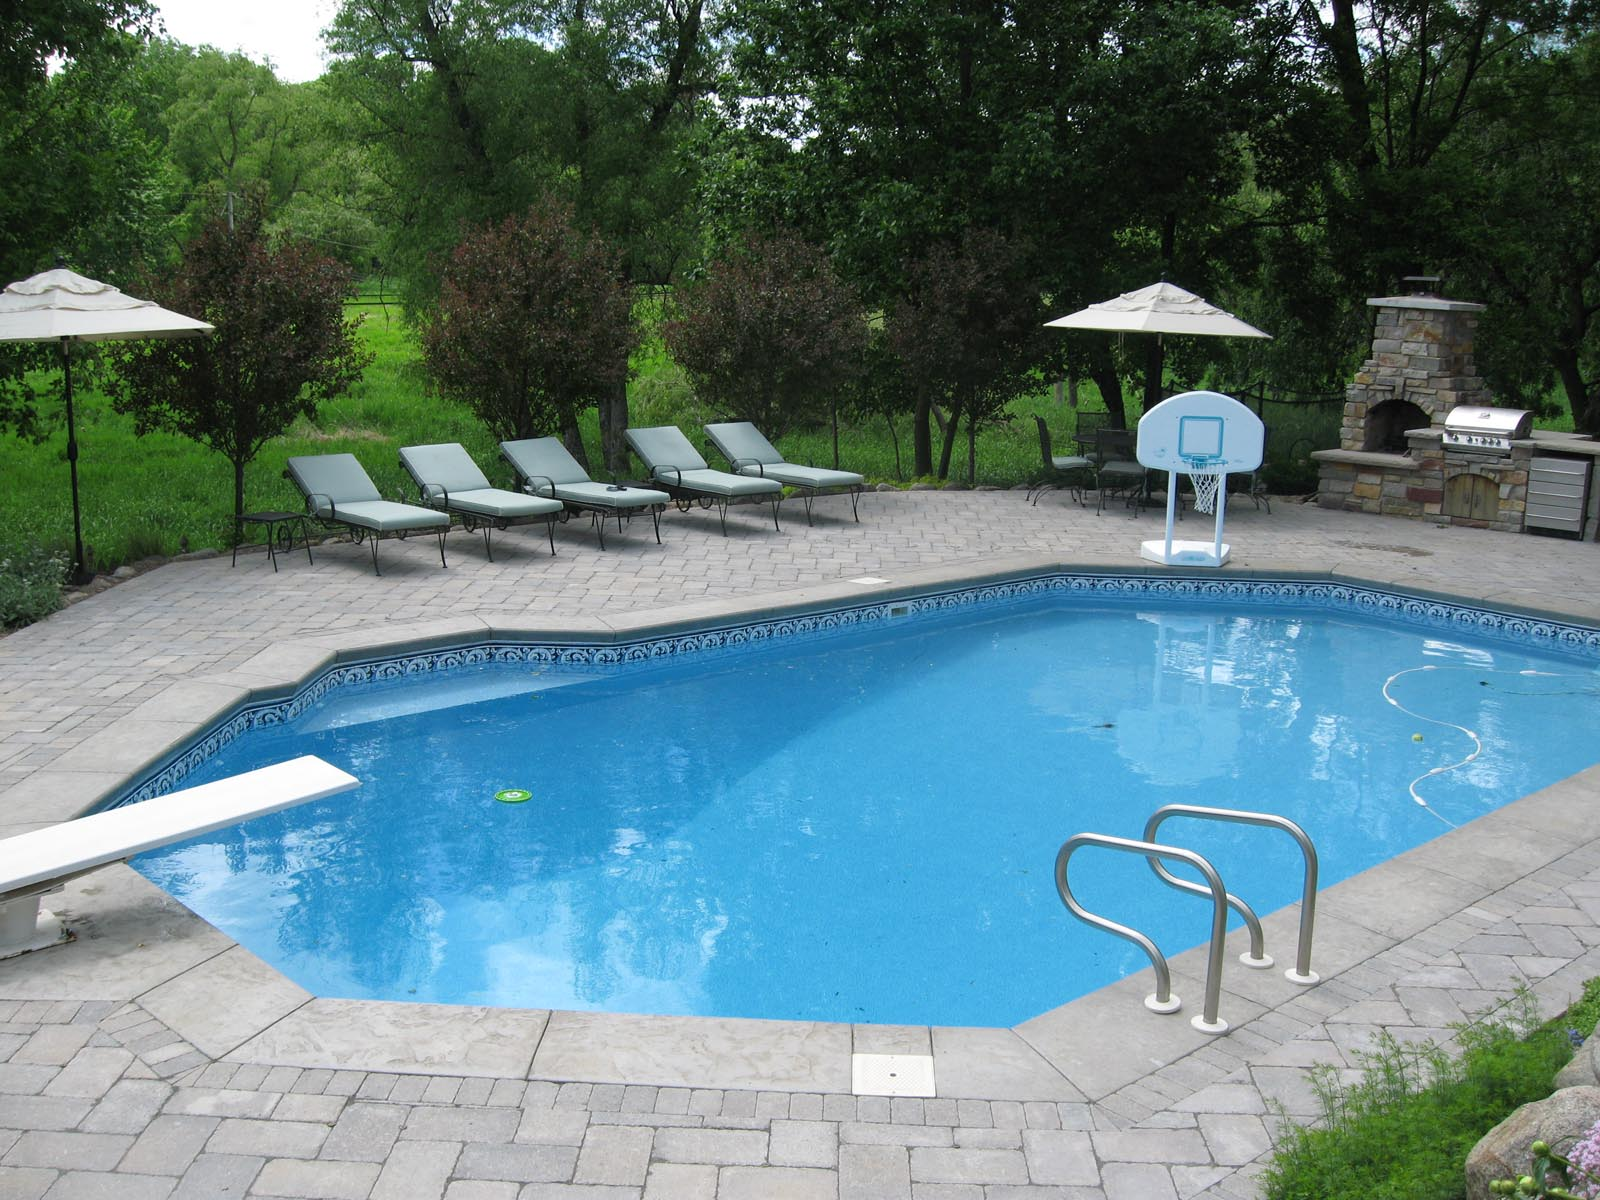 Pool Landscapes - Curbside Landscape